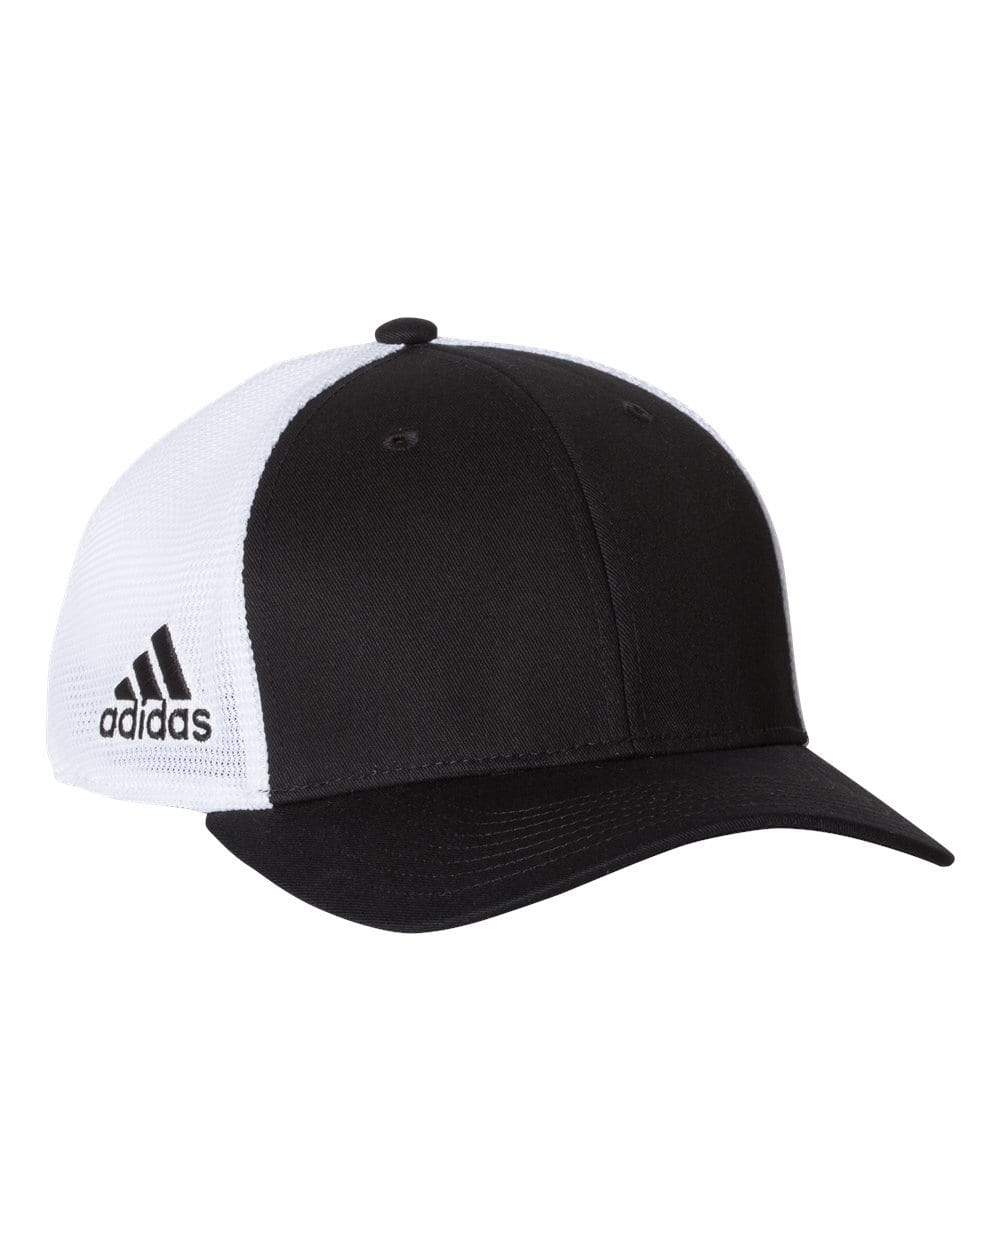 adidas Headwear One size / Black / White Adidas - Mesh-Back Colorblocked Cap